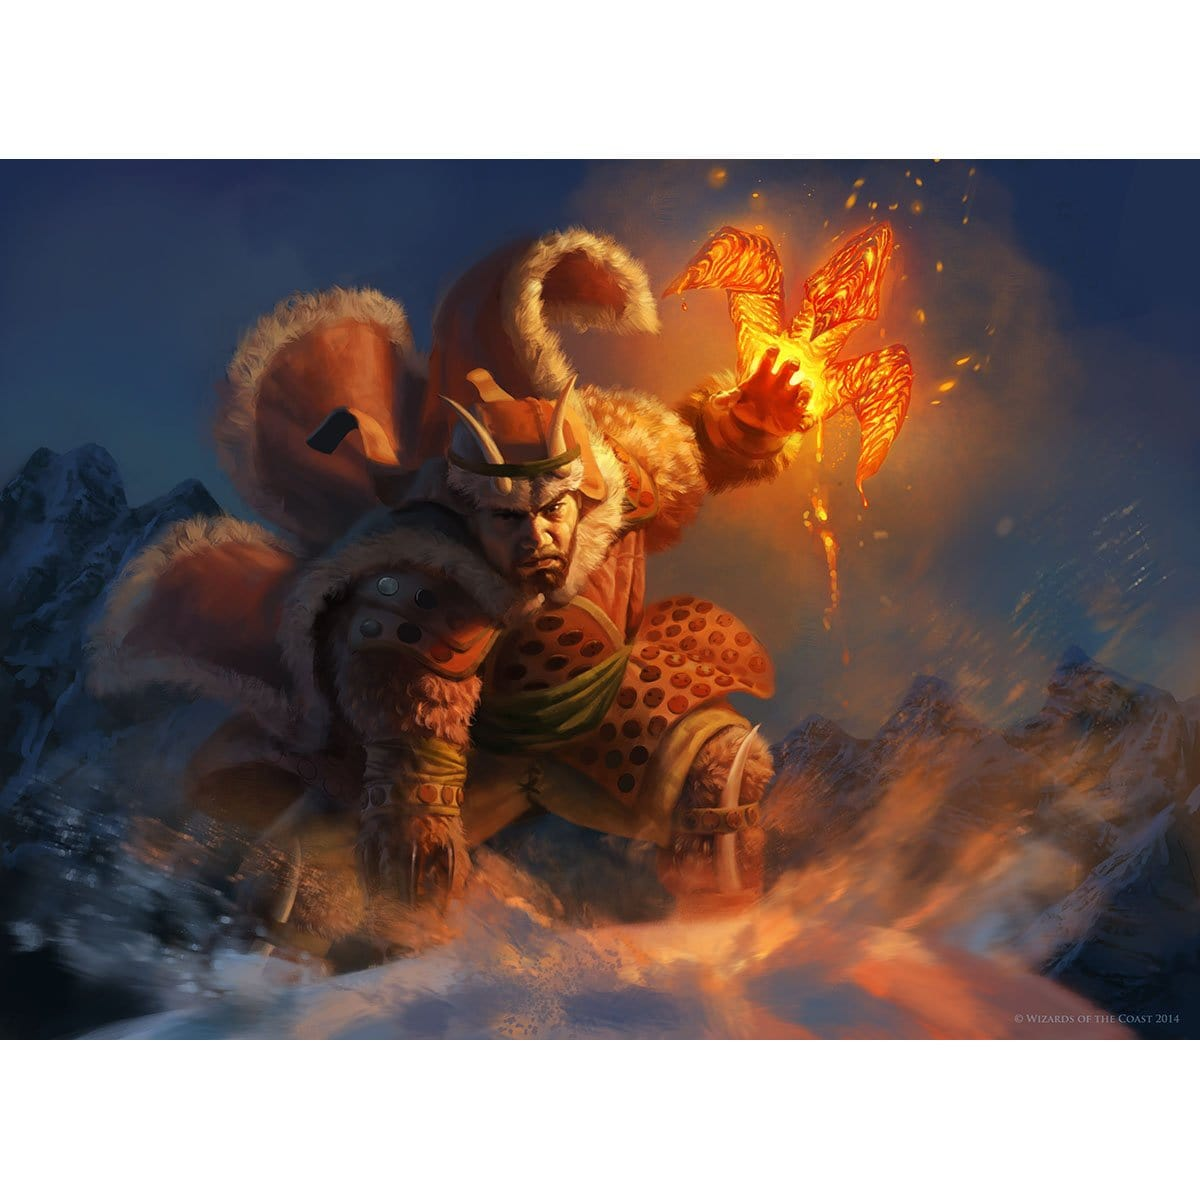 Dragon Grip Print - Print - Original Magic Art - Accessories for Magic the Gathering and other card games